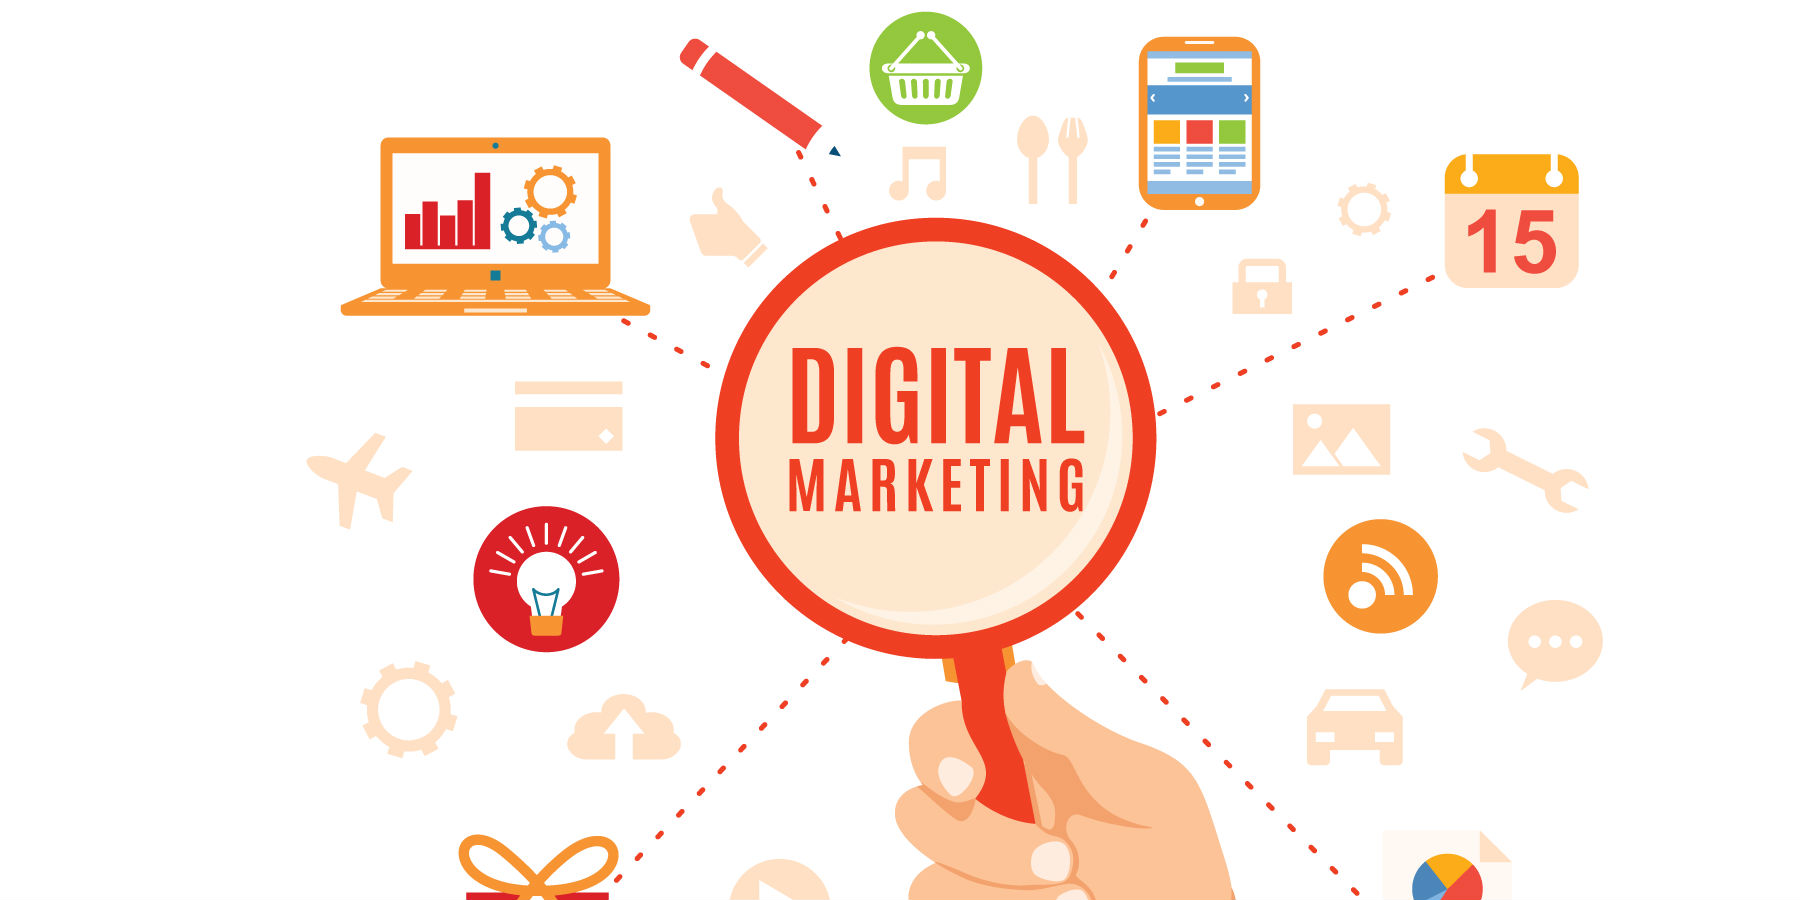 Digital Marketing Software Market Is Booming Worldwide | Microsoft, Salesforce.Com, Oracle, SAP